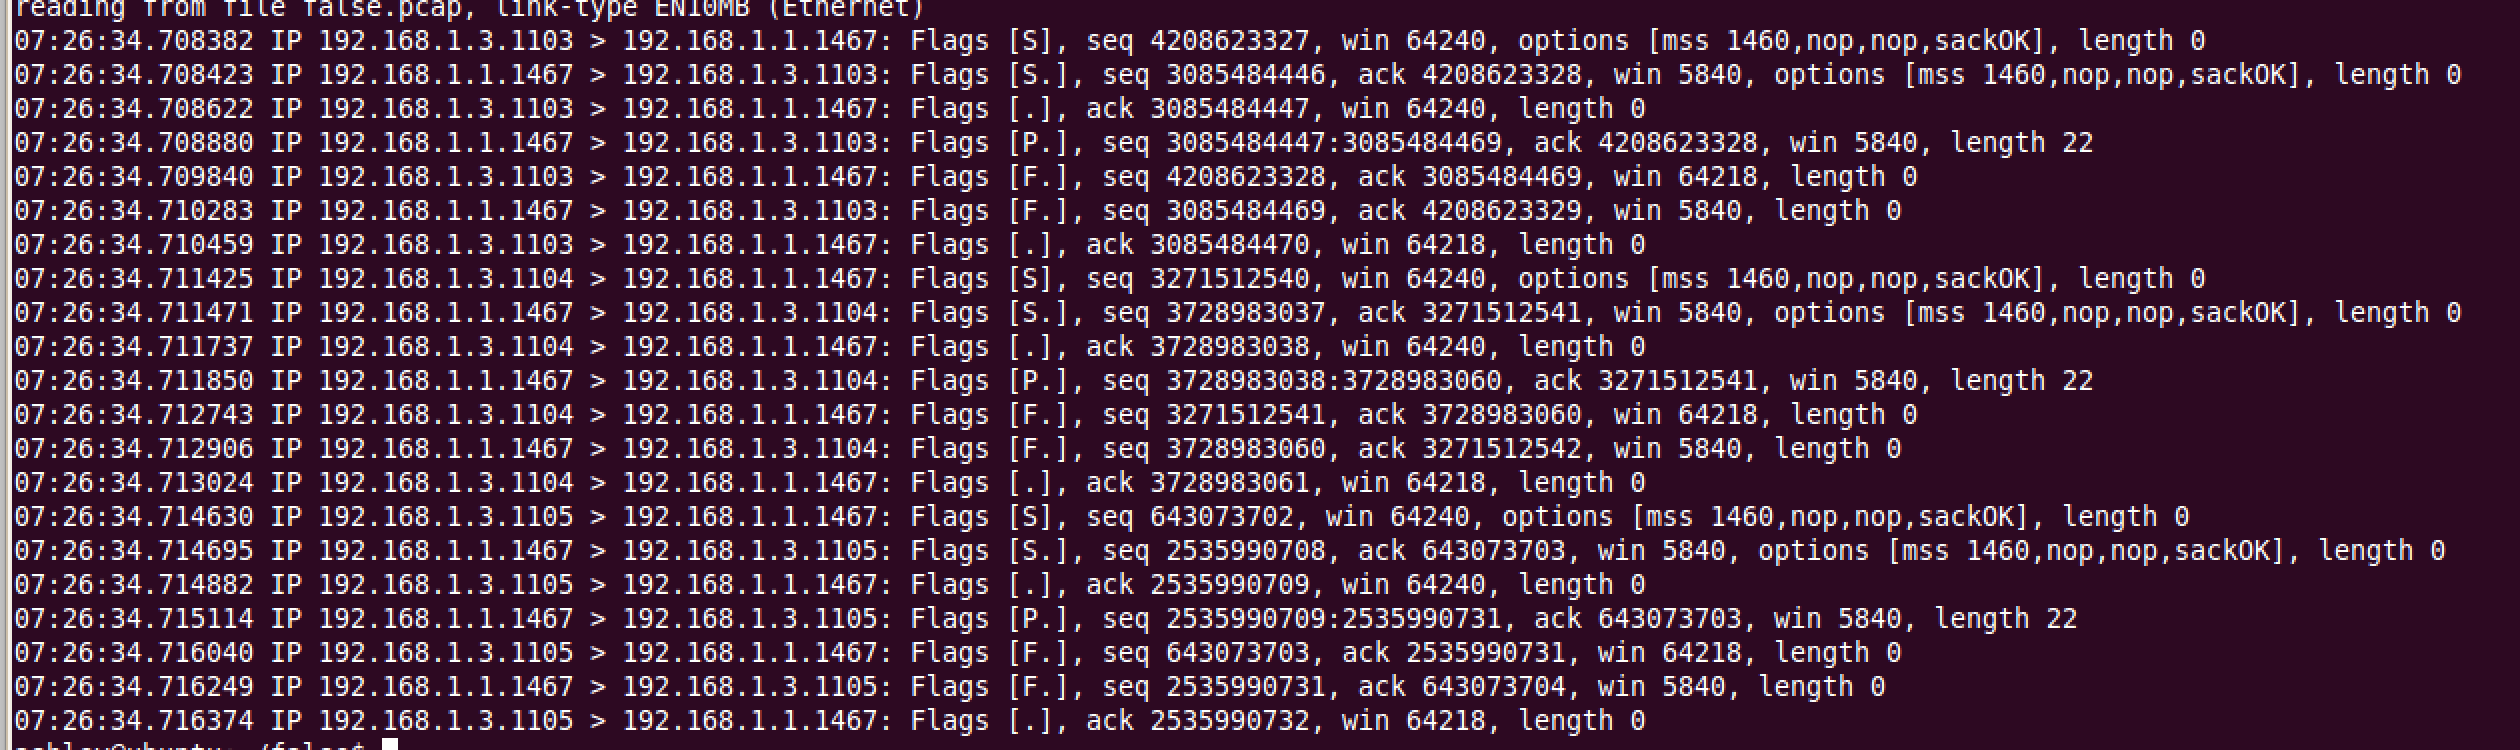 Packet capture produced by running false.exe